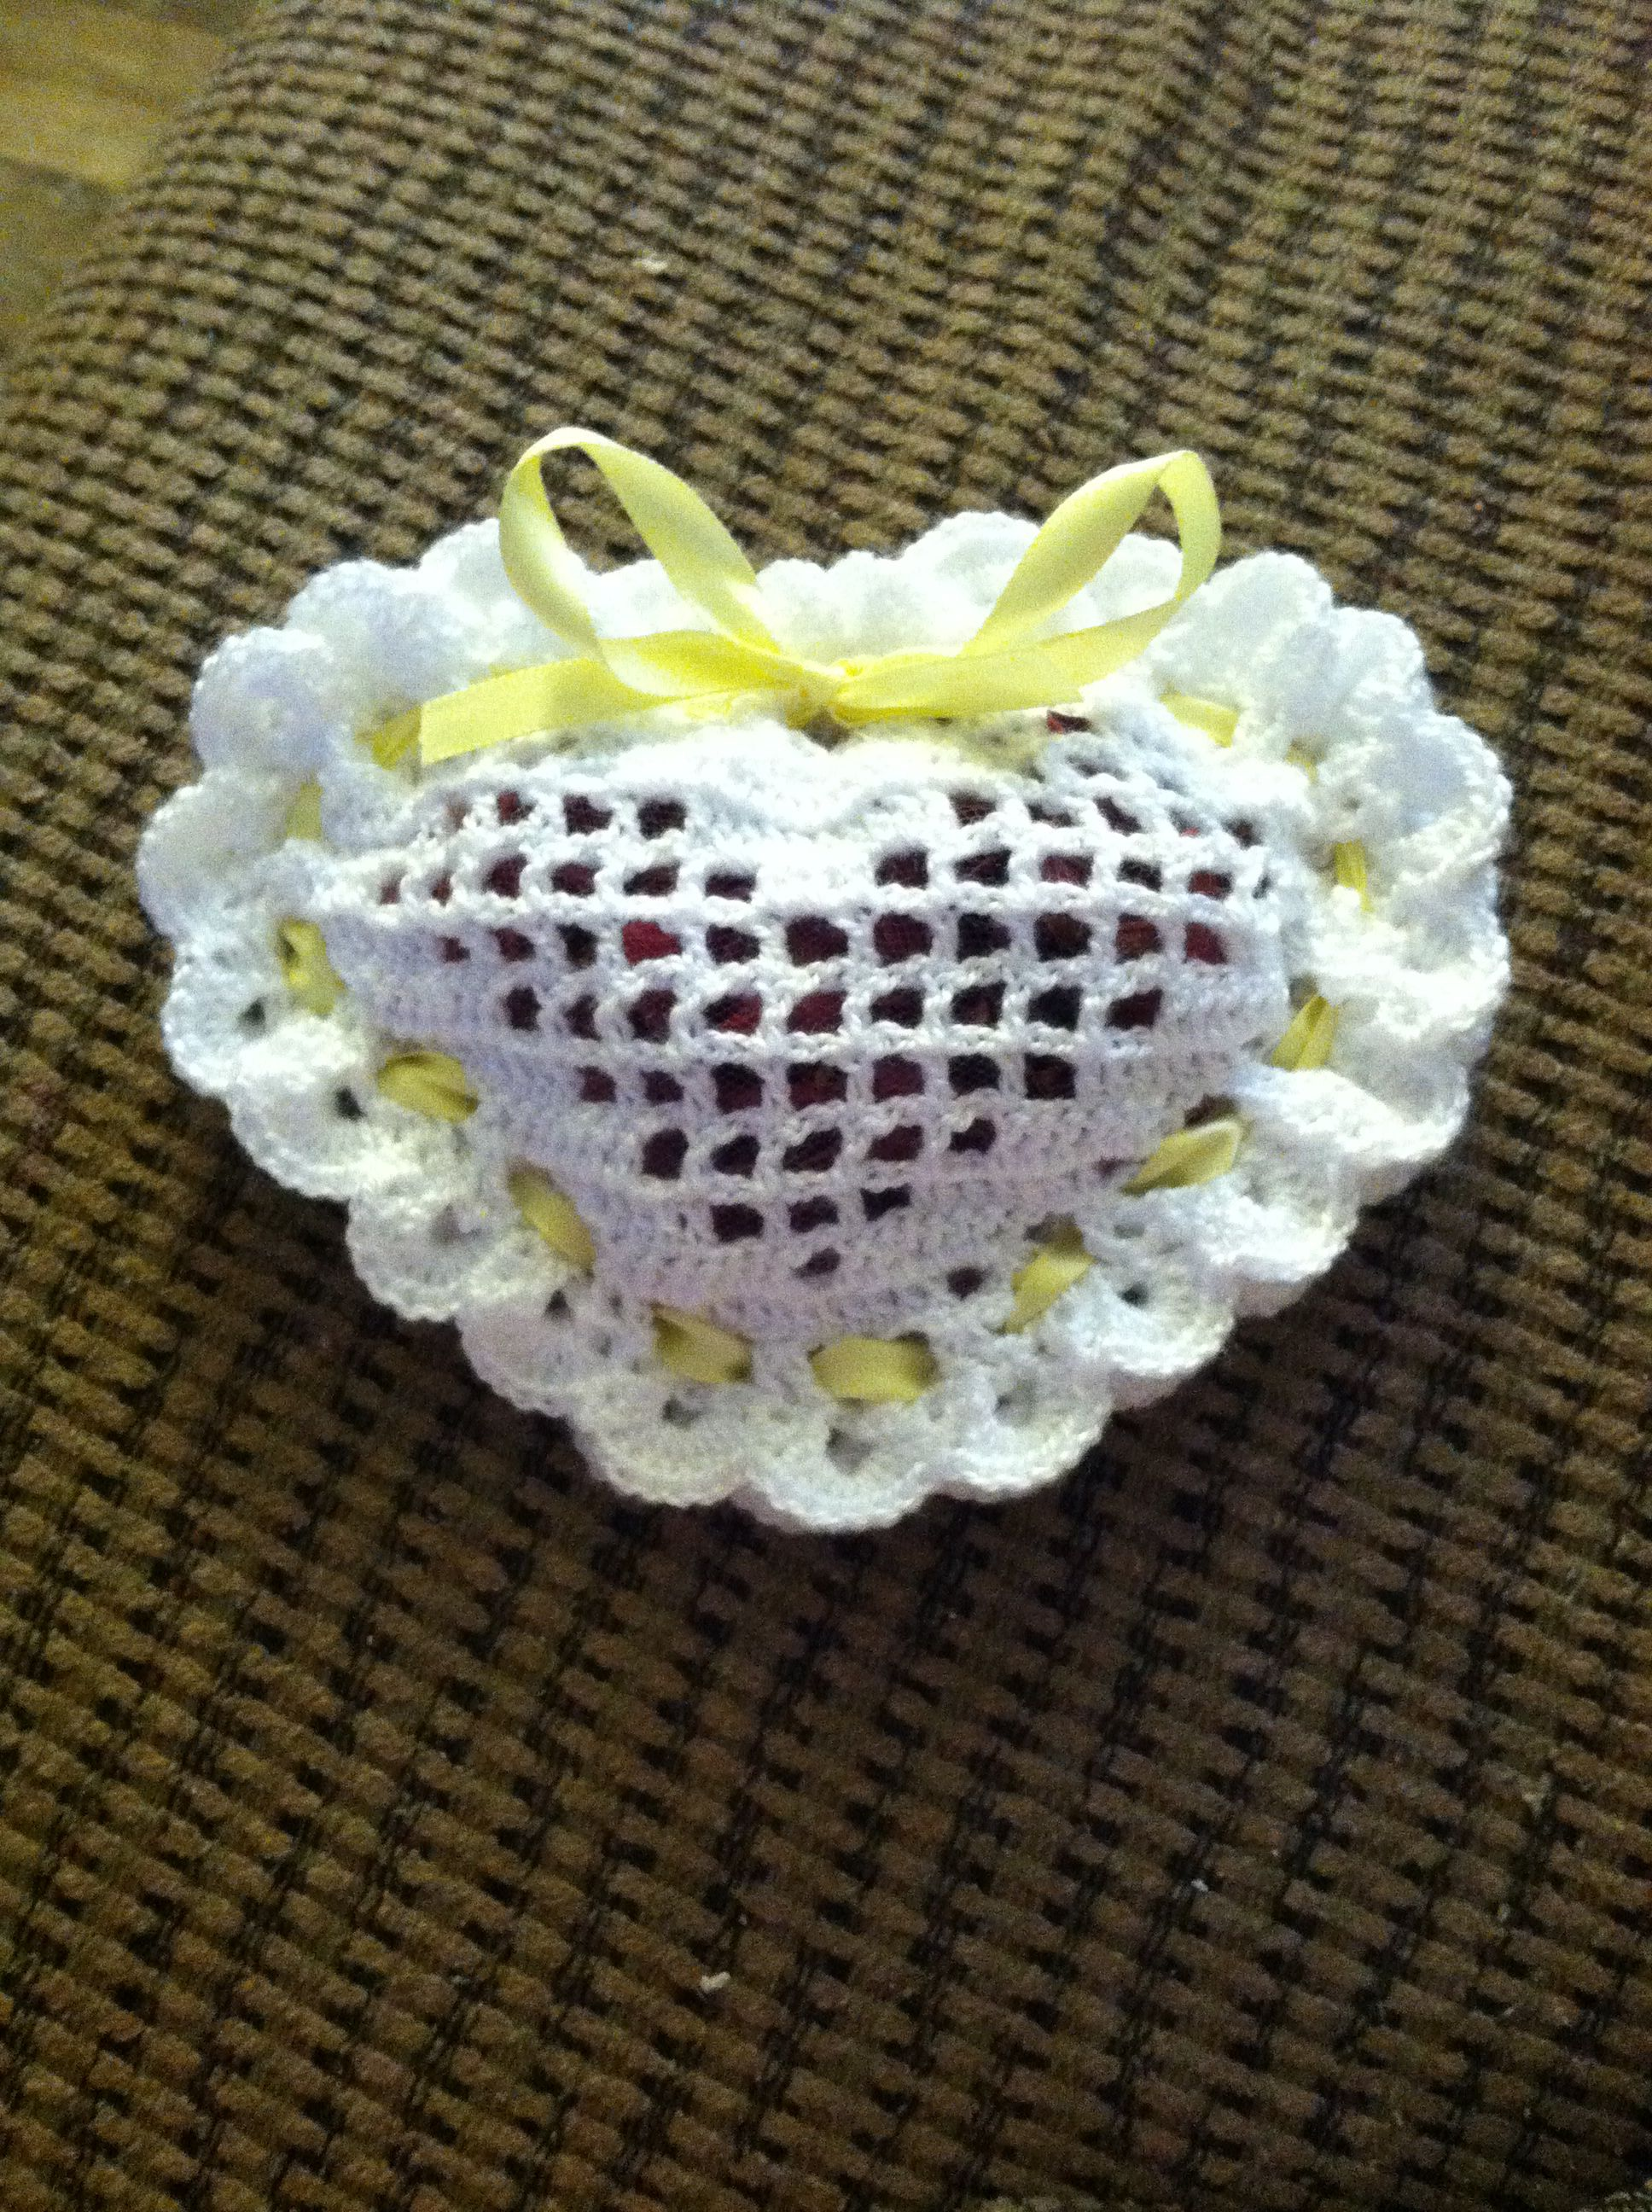 Filet crochet sachet heart w/potpourri Crochet Pinterest